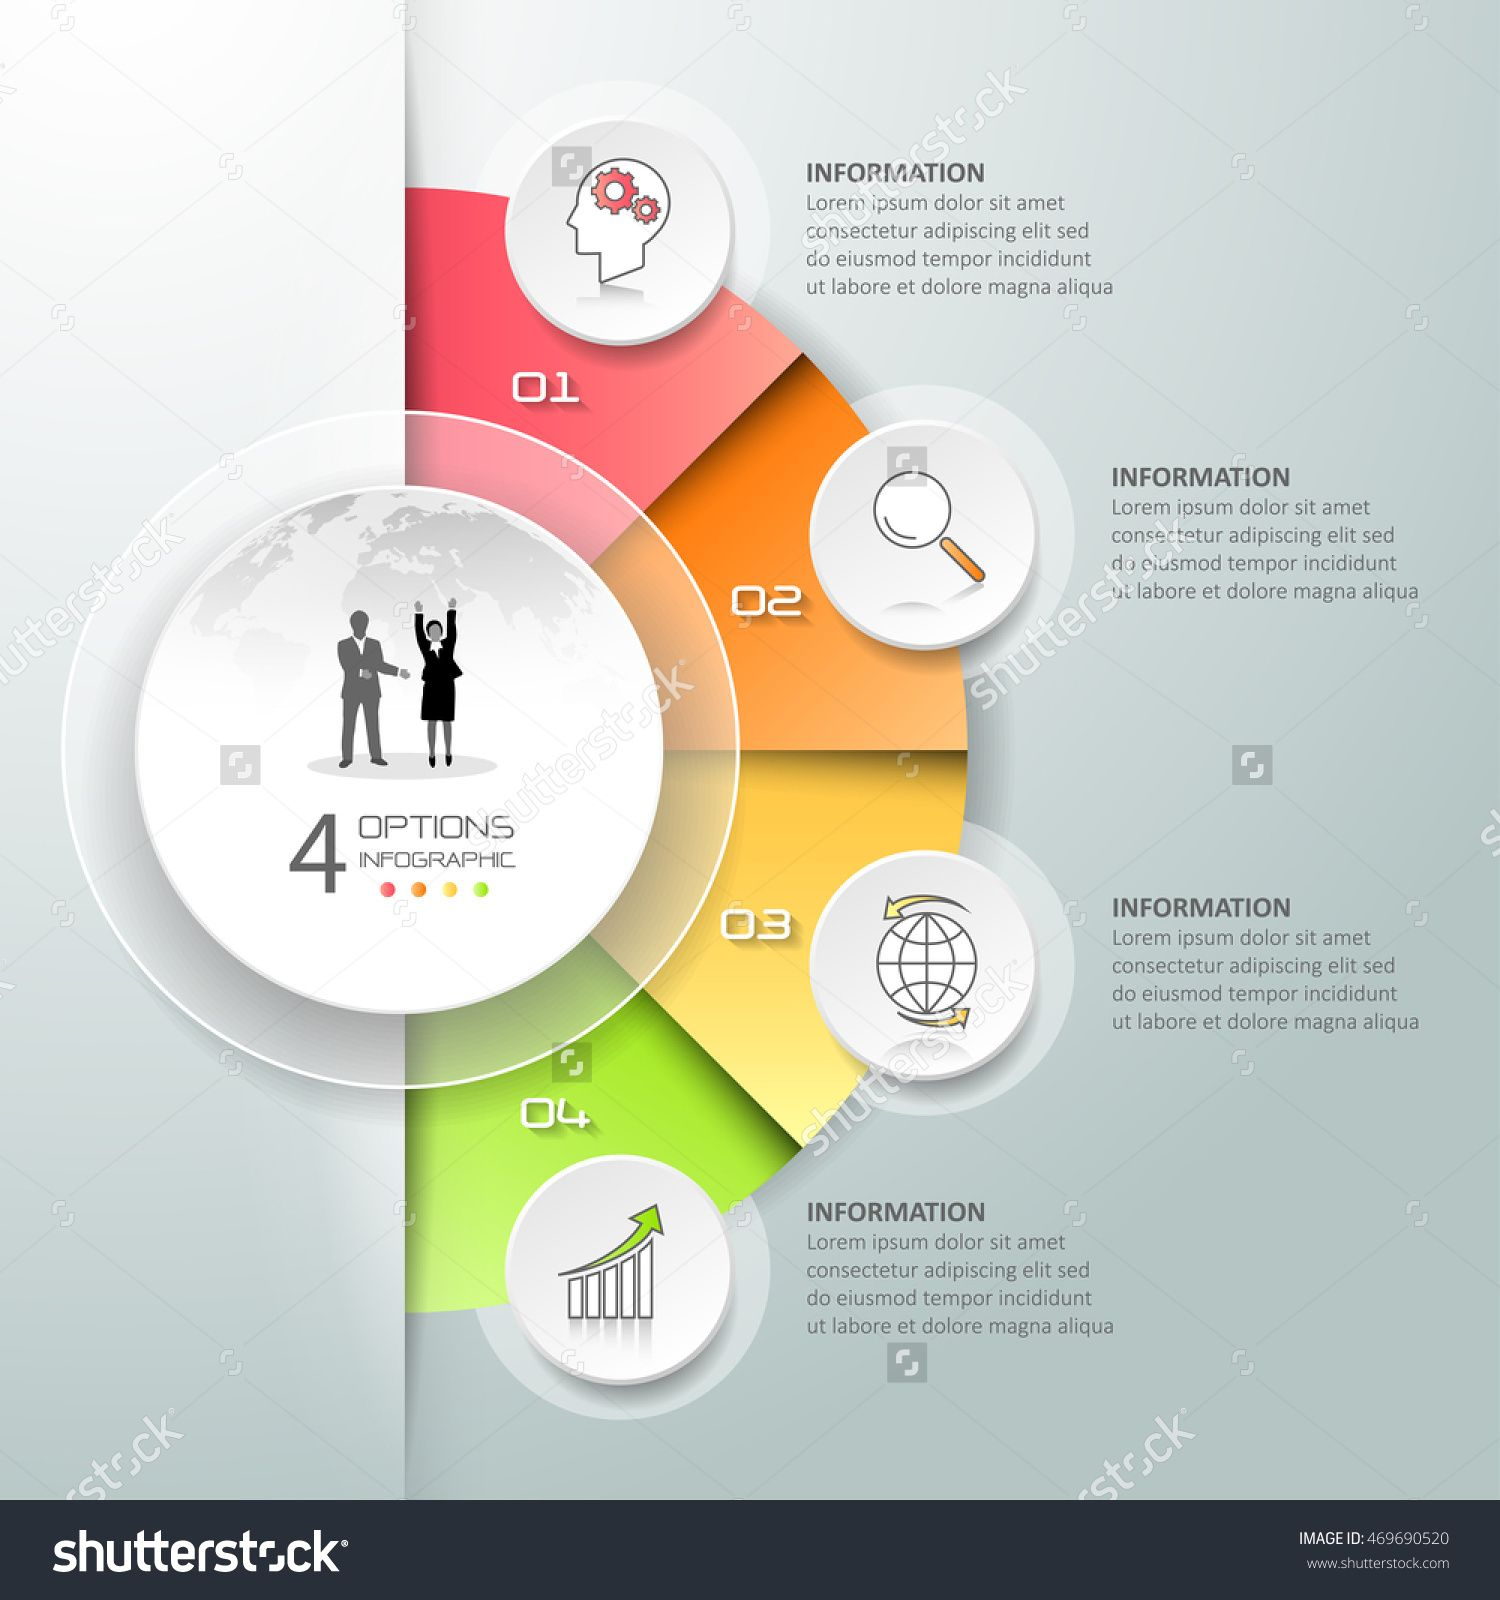 design circle infographic 4 options business concept infographic template can be used for. Black Bedroom Furniture Sets. Home Design Ideas